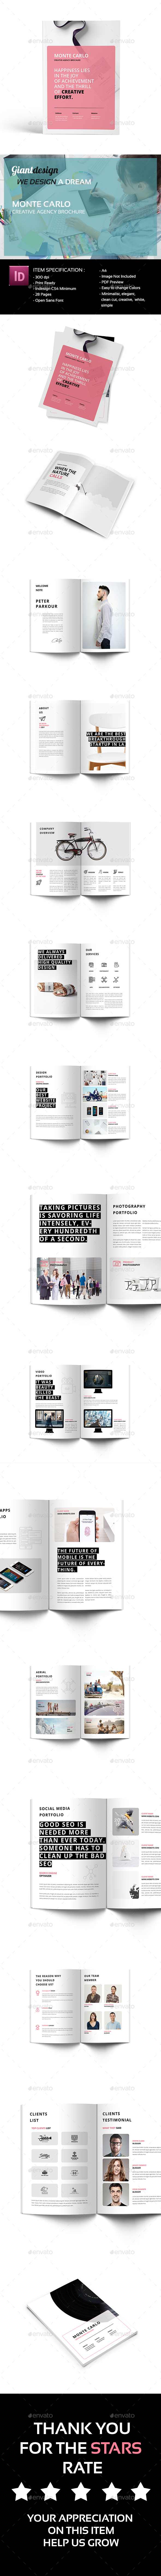 GraphicRiver Monte Carlo Creative Agency Brochure 20997571